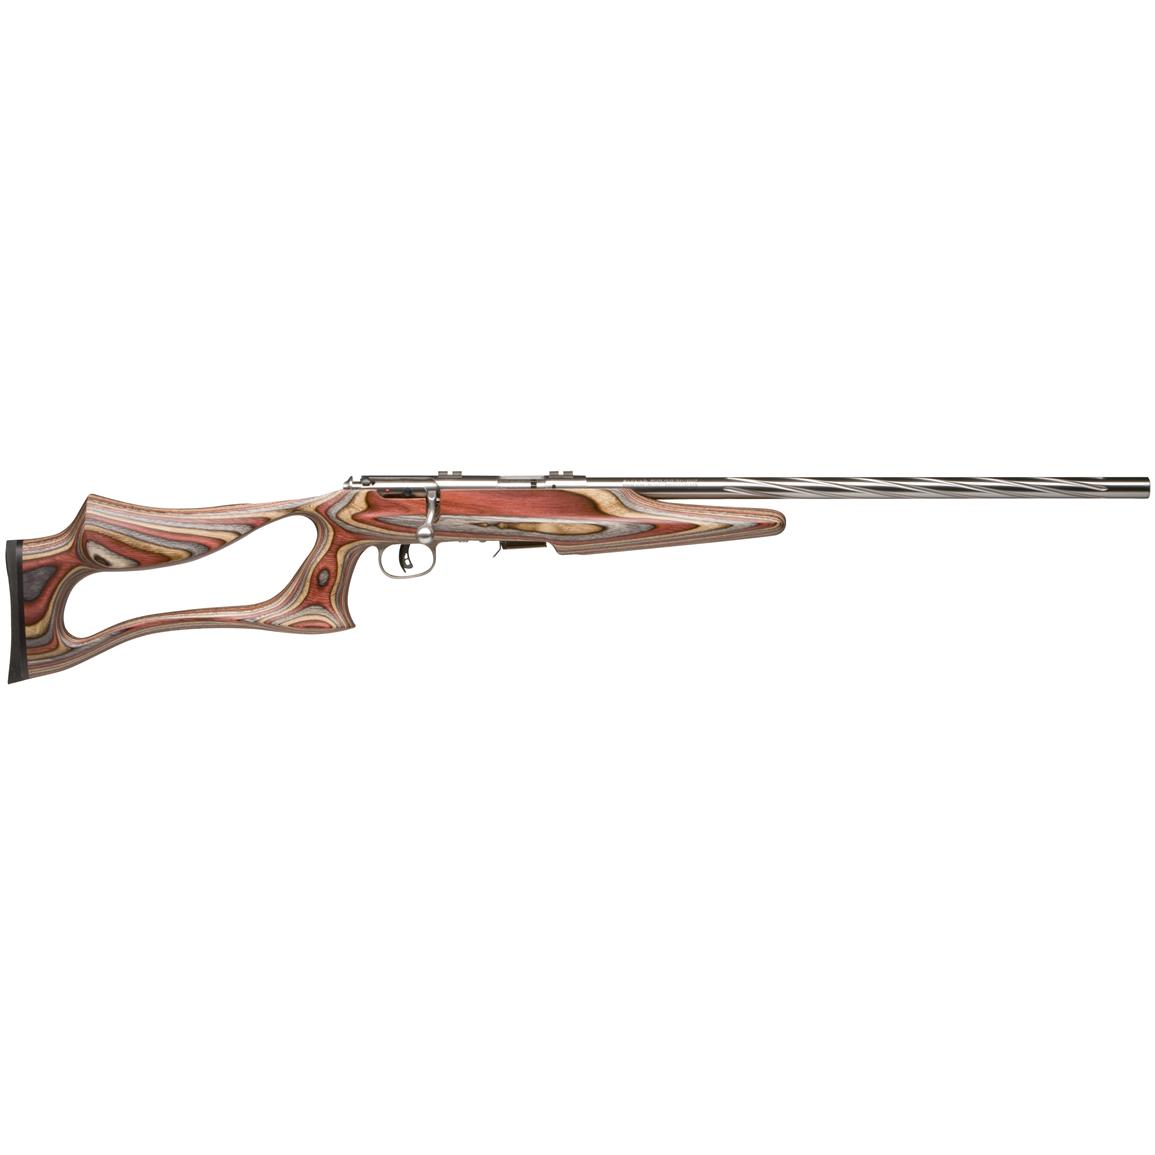 "Savage MKII BSEV, Bolt Action, .22LR, Rimfire, 21"" Heavy Stainless Steel Barrel, 5+1 Rounds"